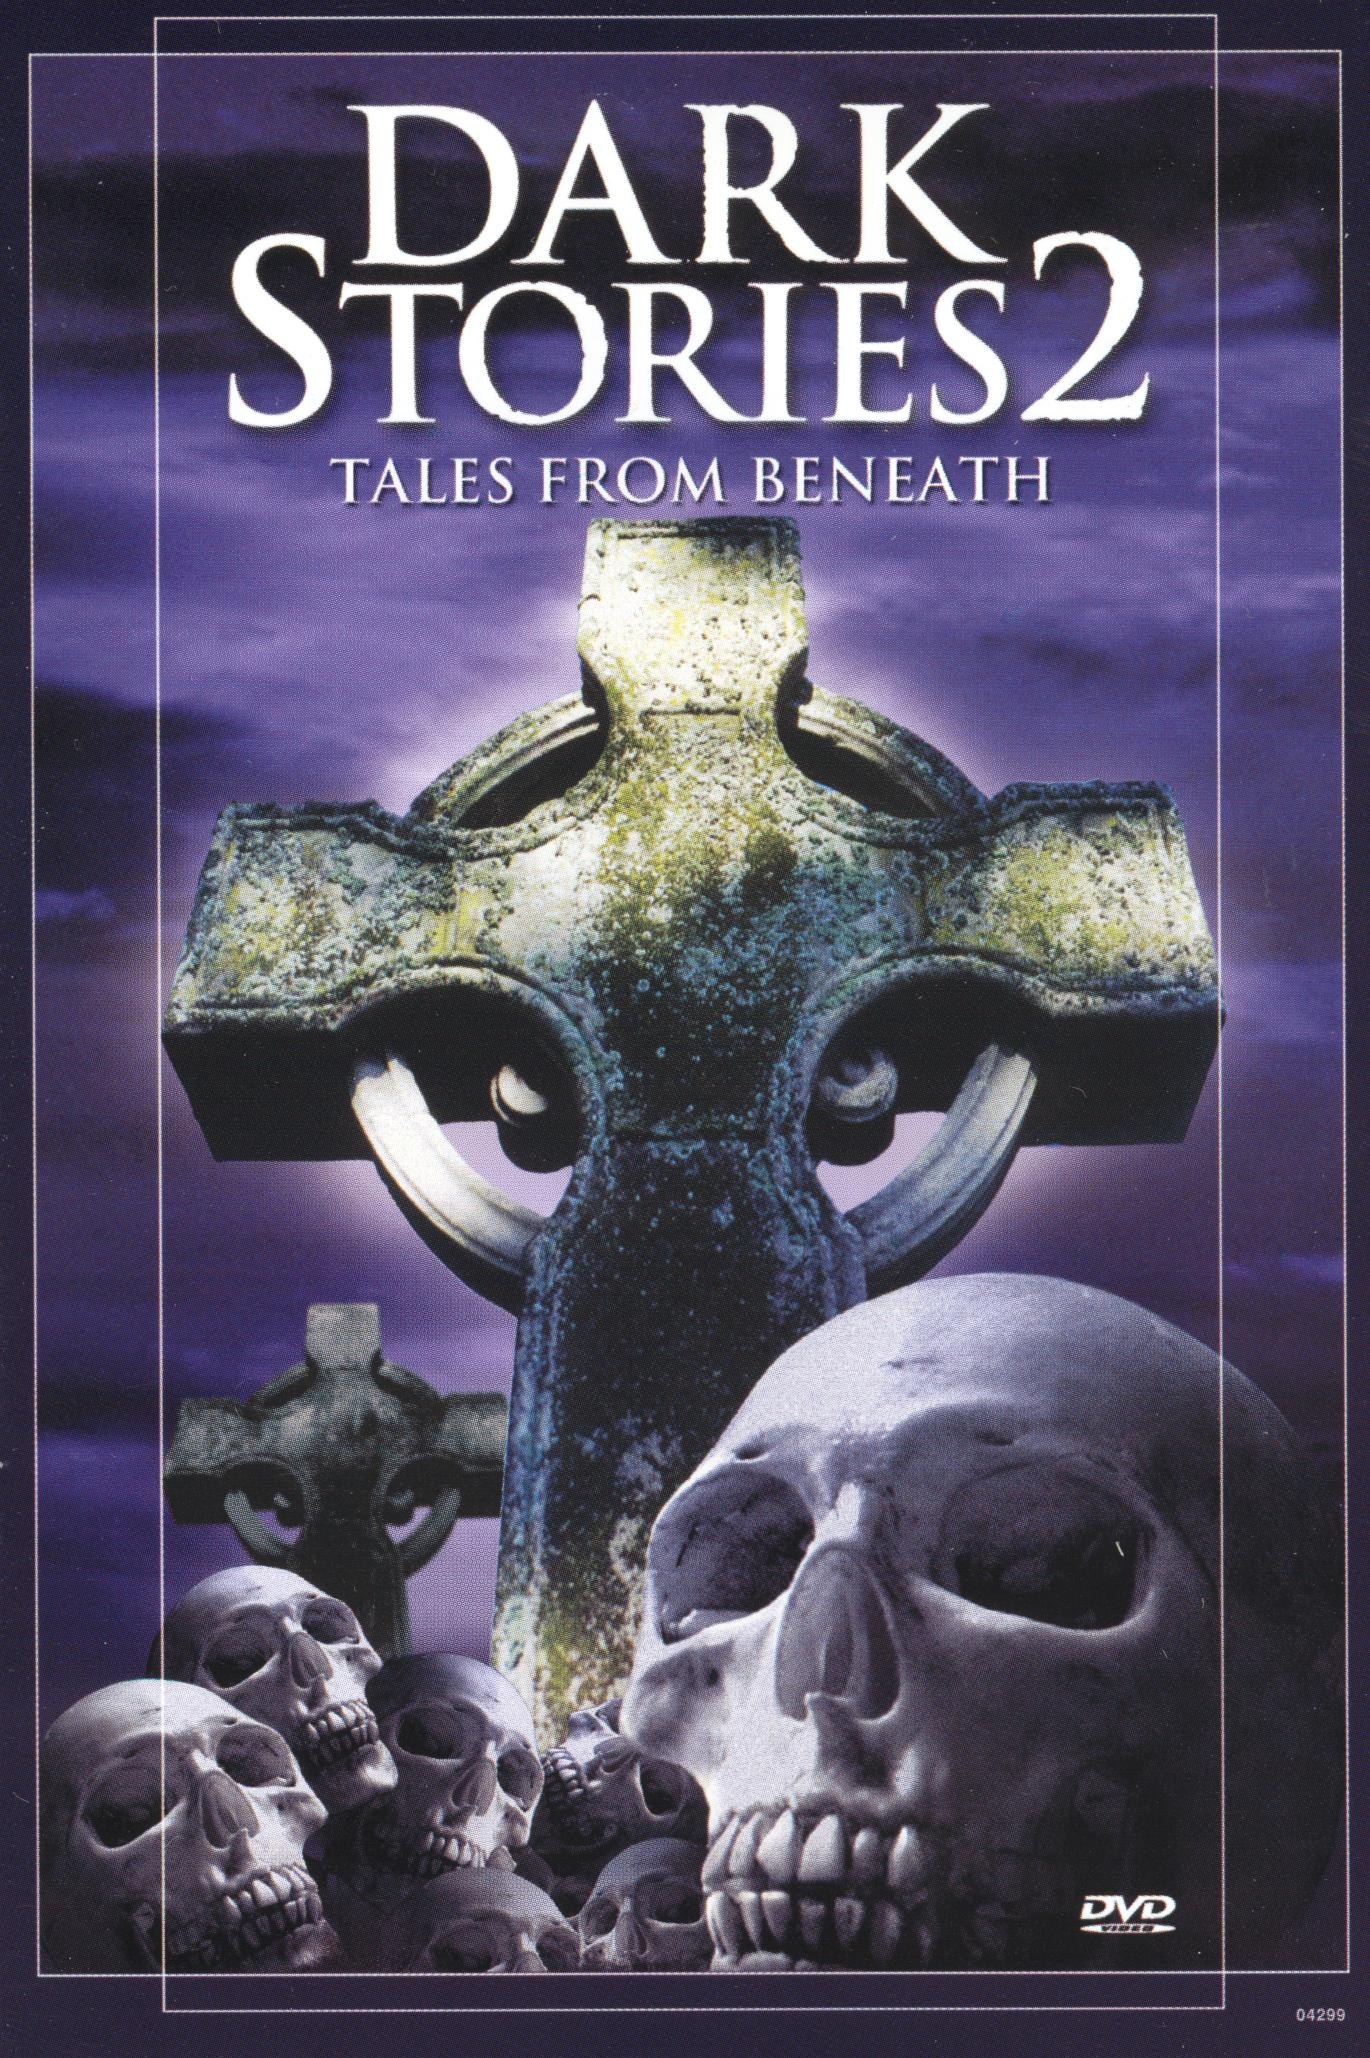 Dark Stories 2: Tales From Beneath